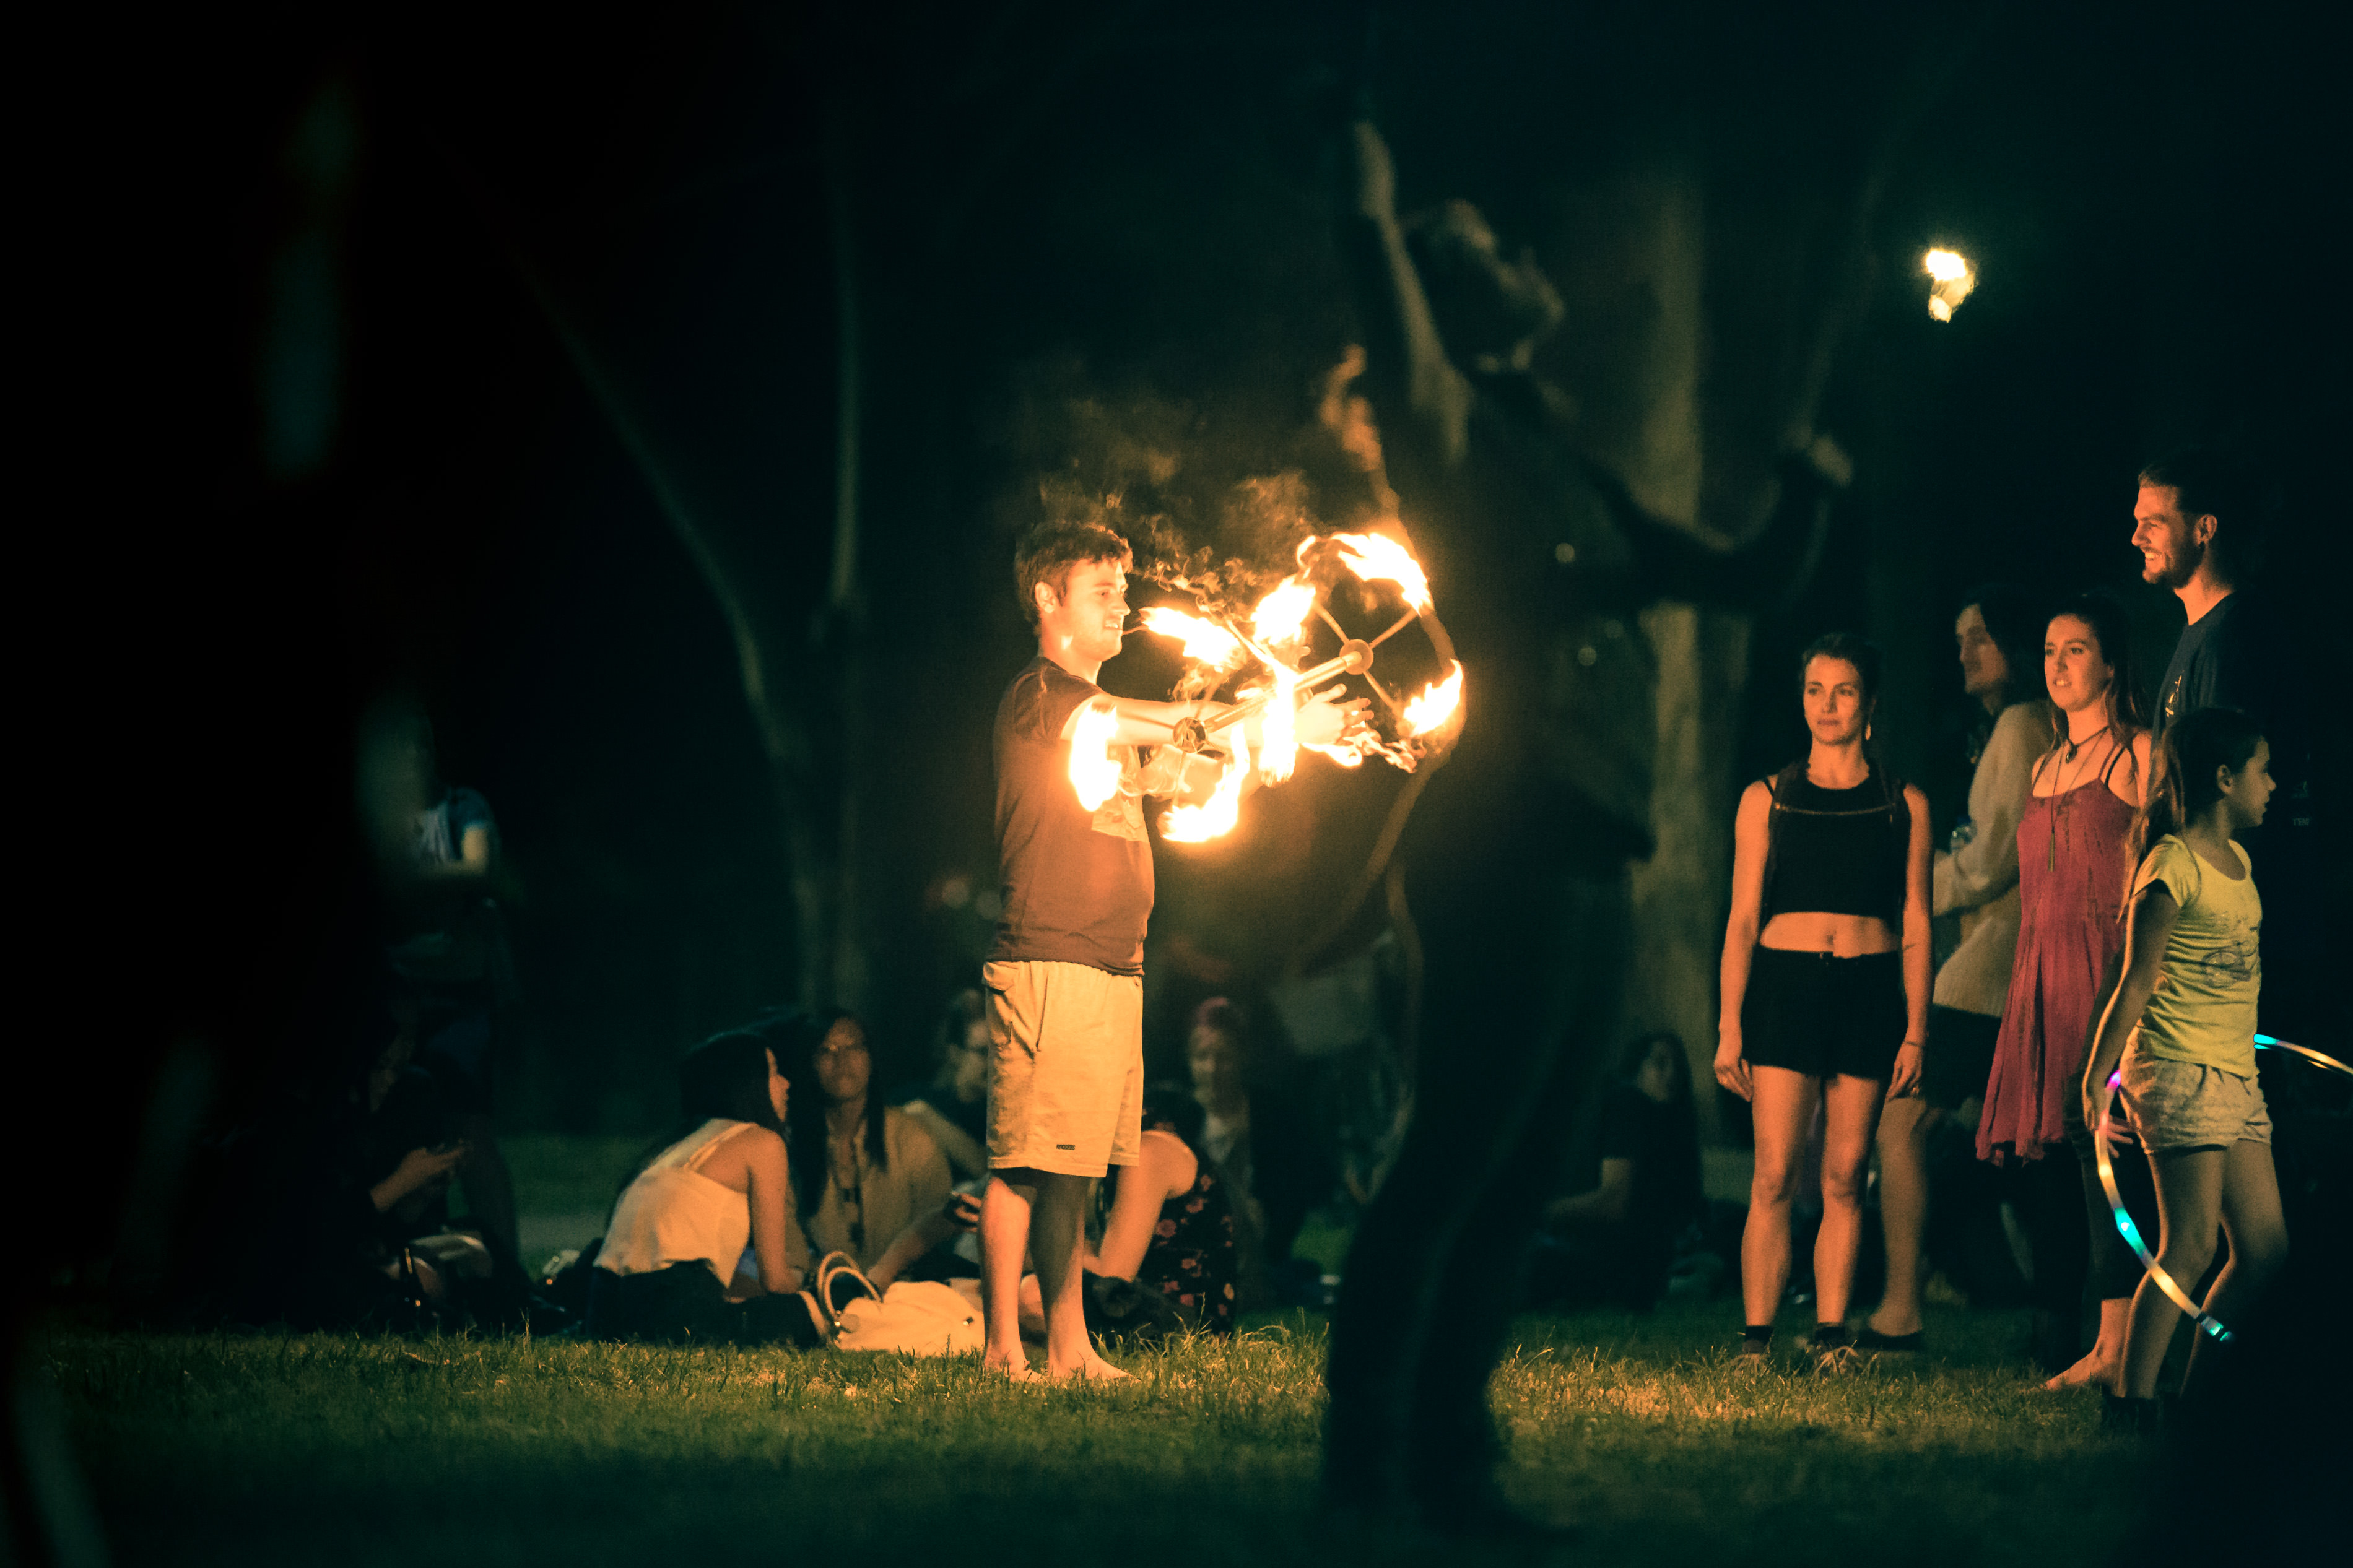 Newtown Fire Twirling with a Flaming Staff in Camperdown Memorial Park